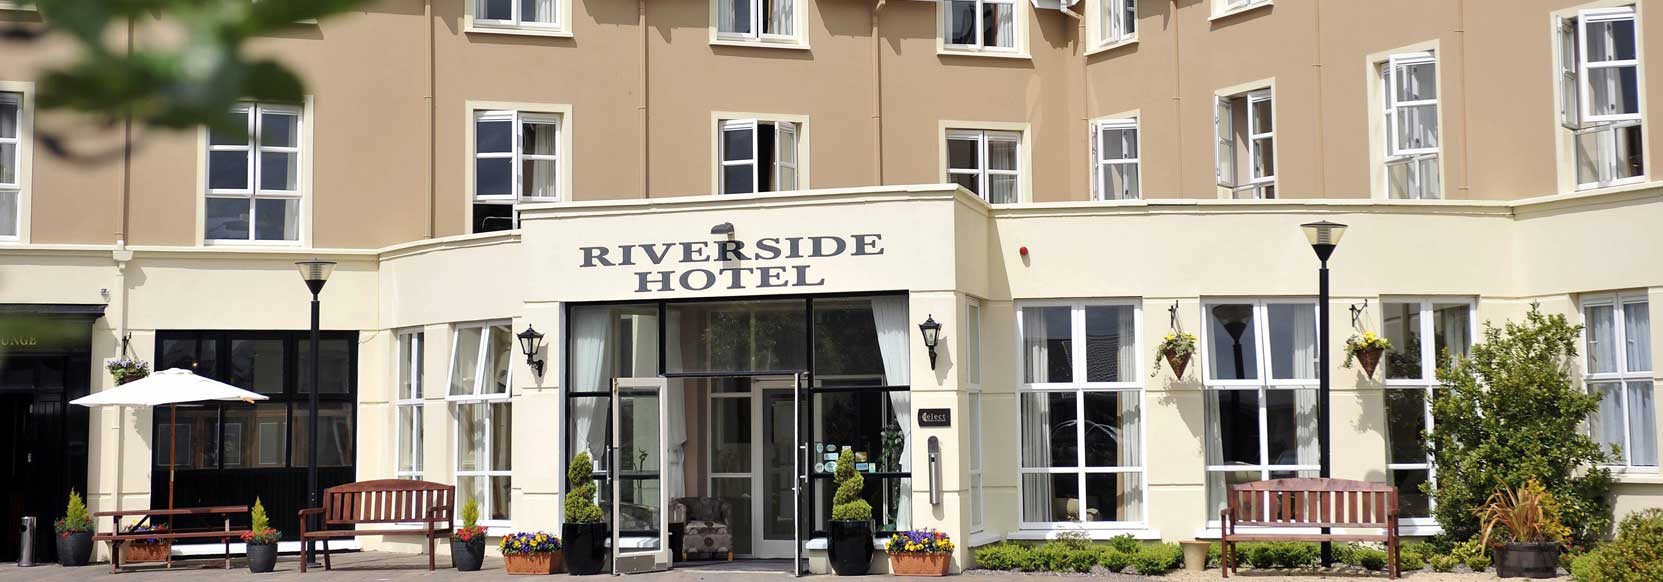 Killarney Riverside Hotel Exterior Entrance